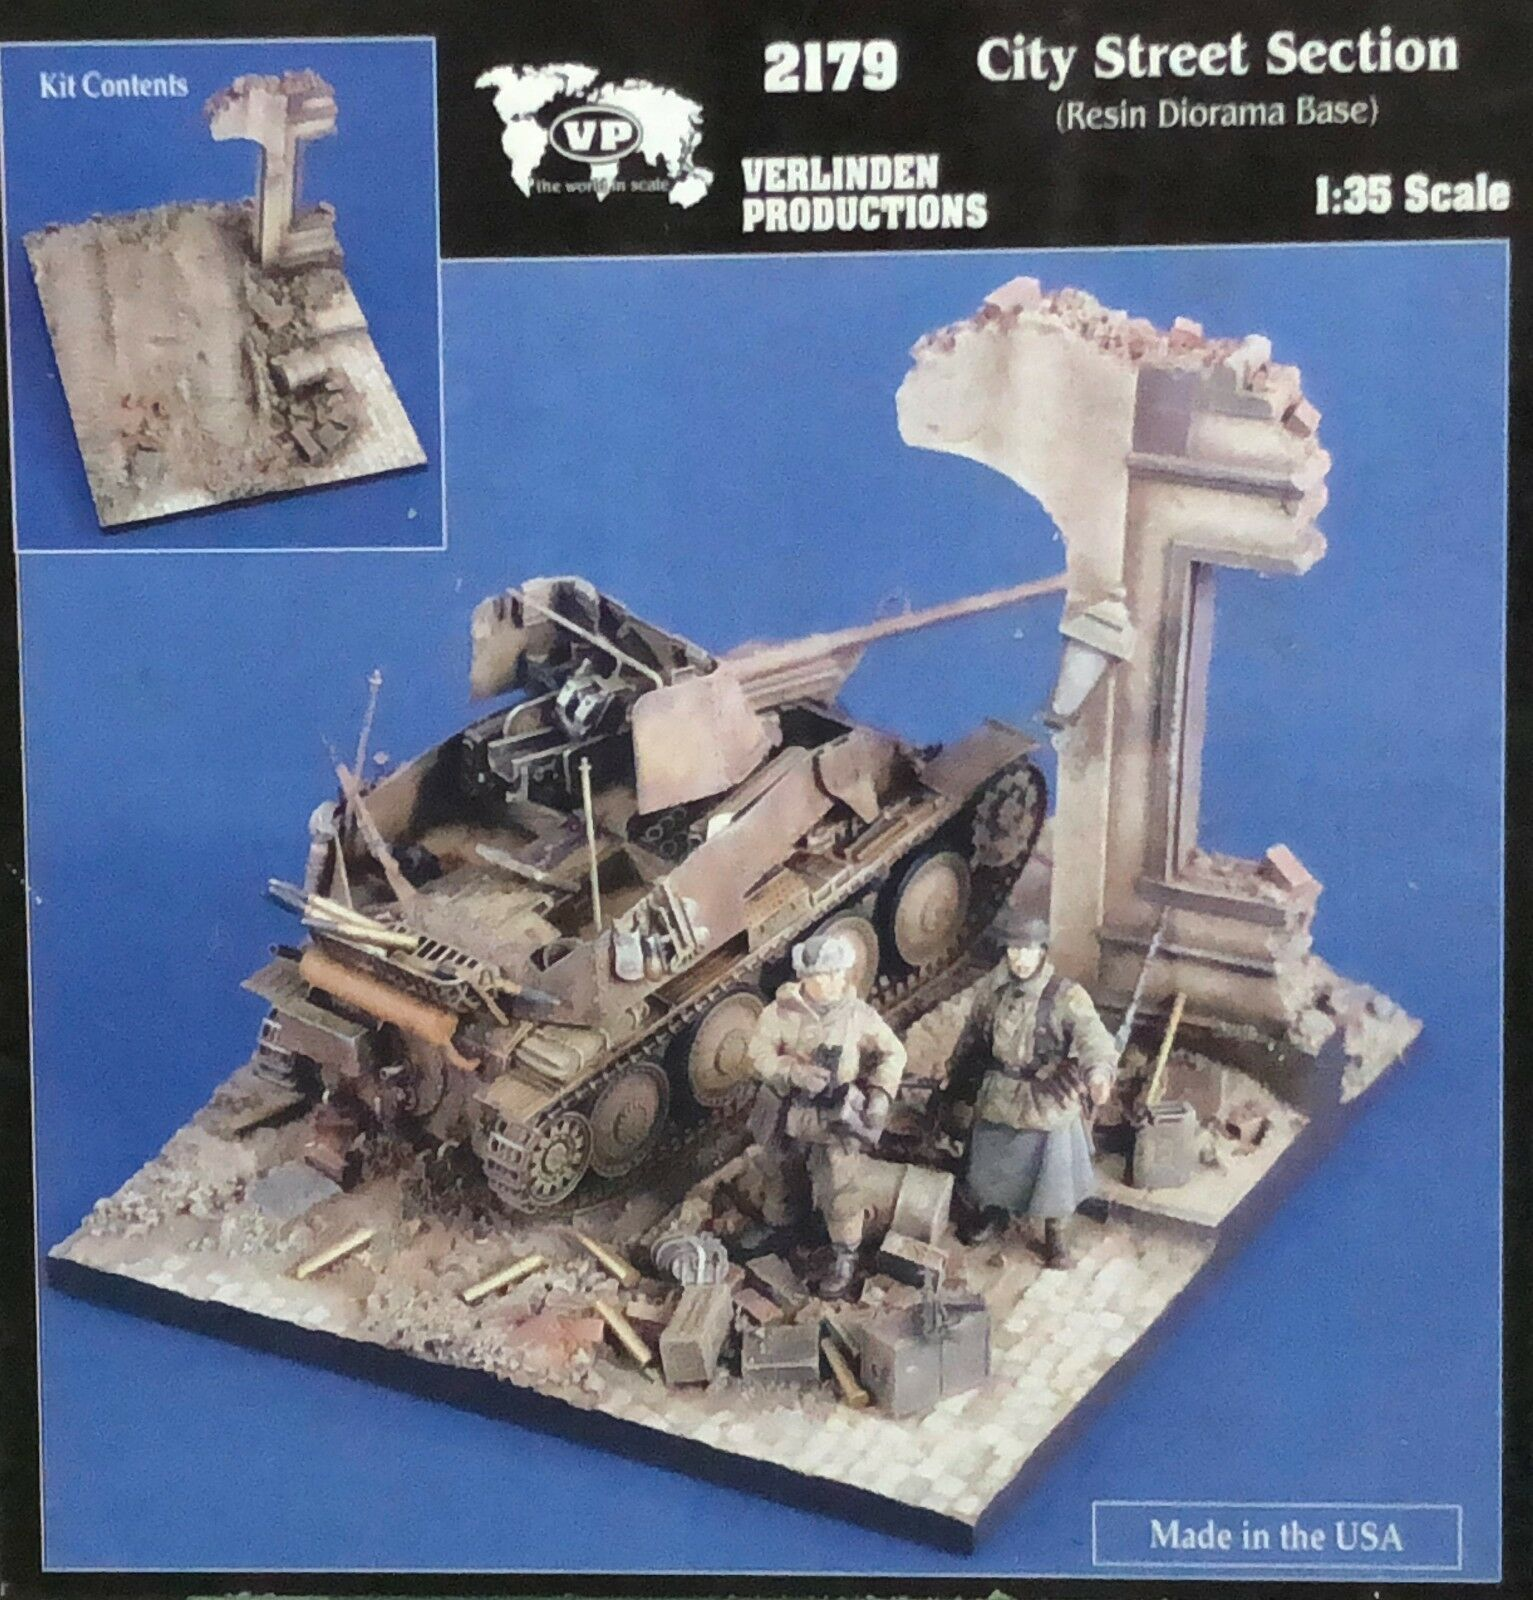 1 35 city street section resin diorama base verlinden 2179. new